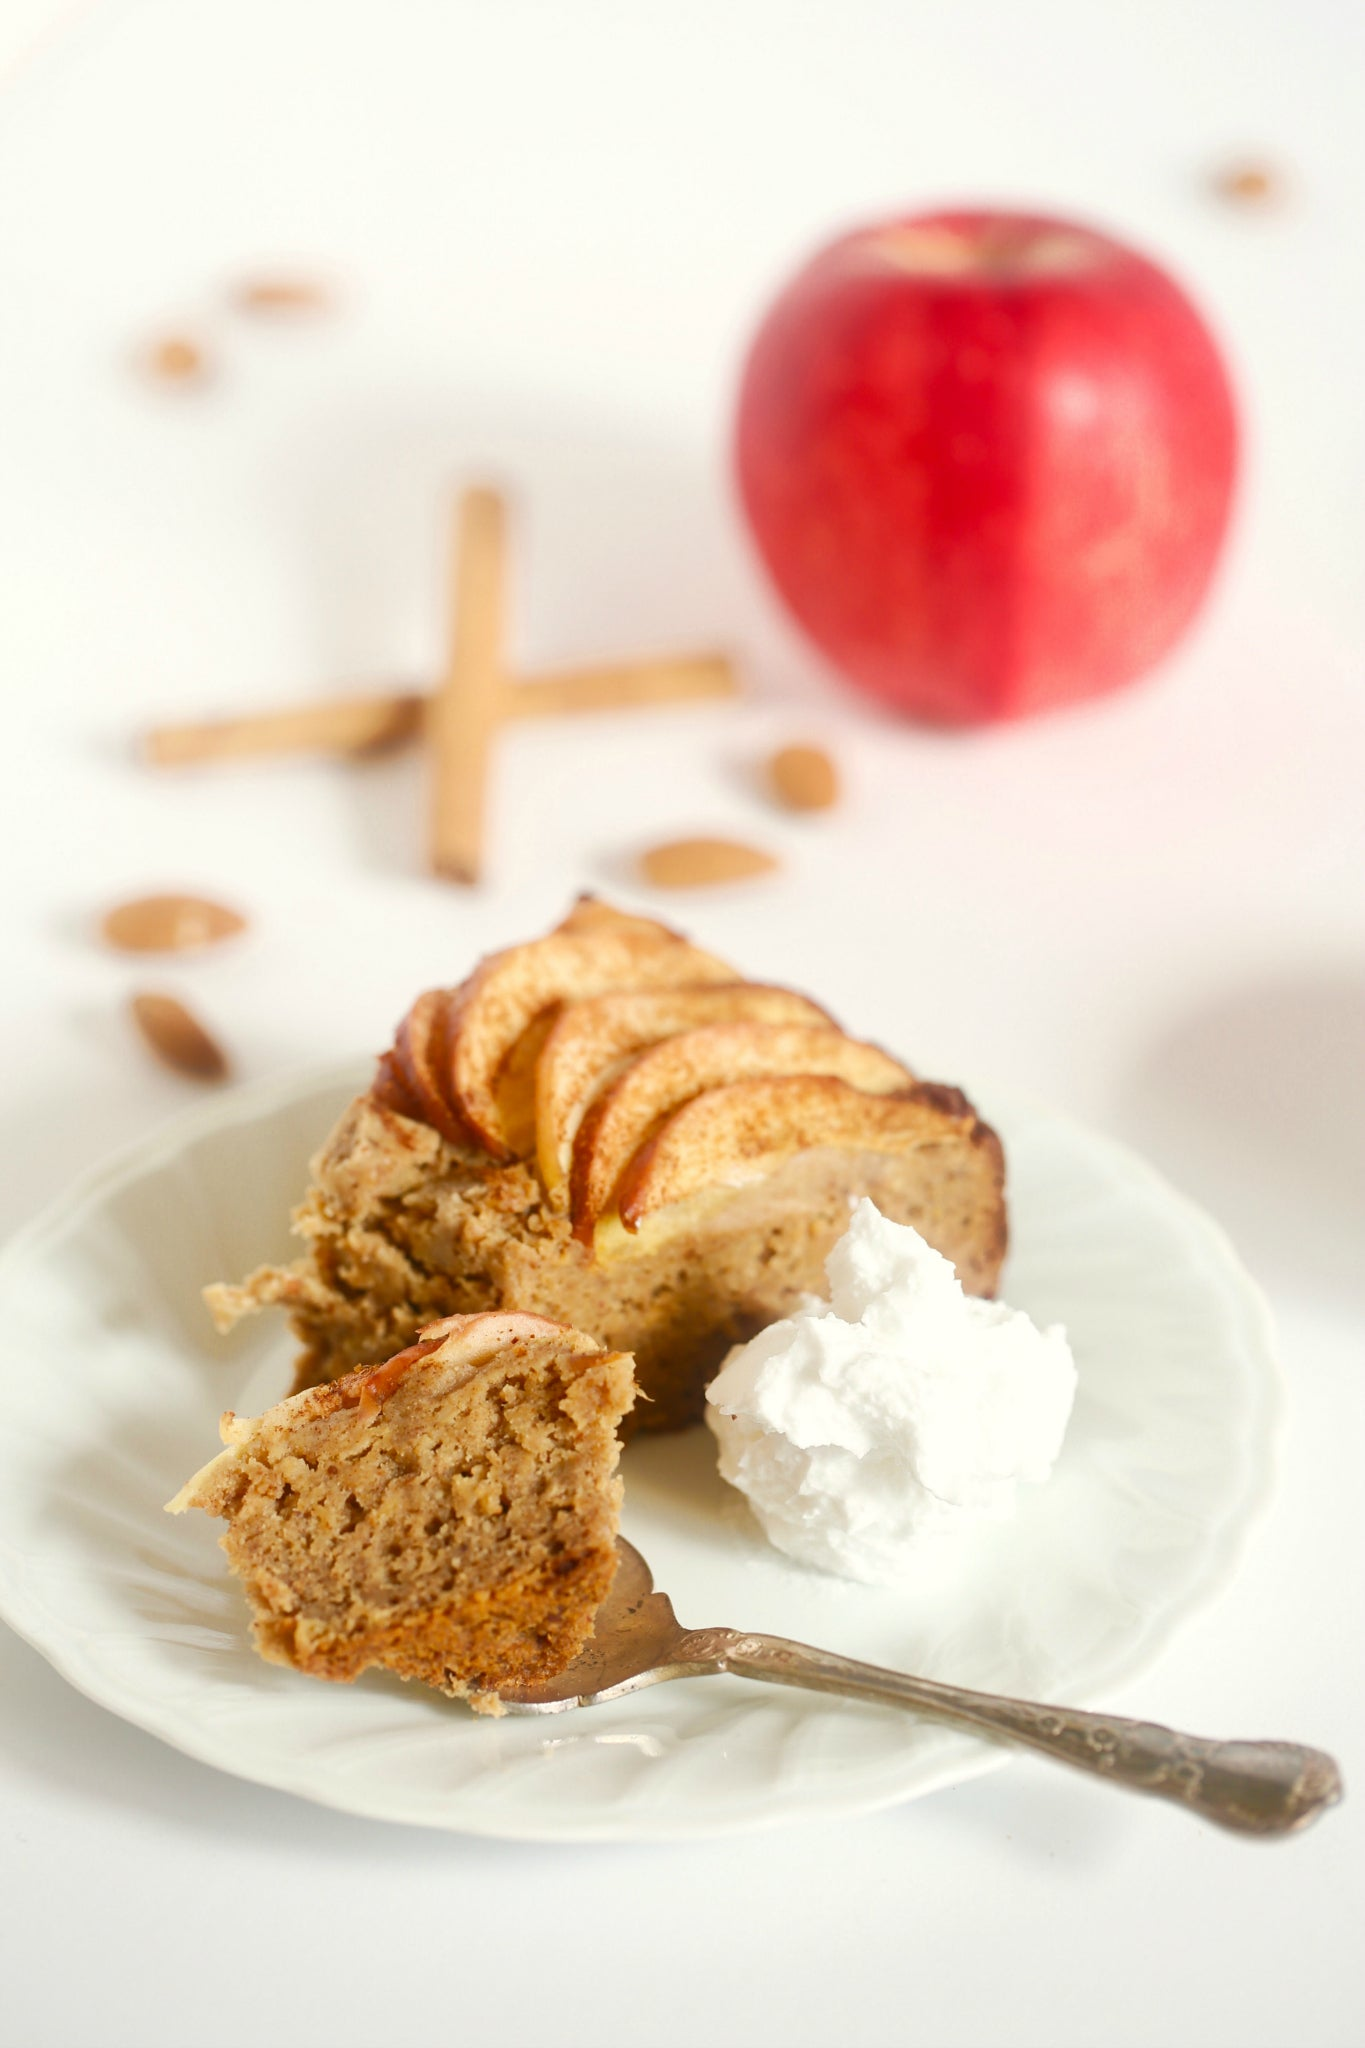 Simply delicious CLASSIC APPLE CAKE with cinnamon - #vegan #glutenfree #cake #dessert #healthy #recipe #plantbased #wholefoods #nutrition #begoodorganics